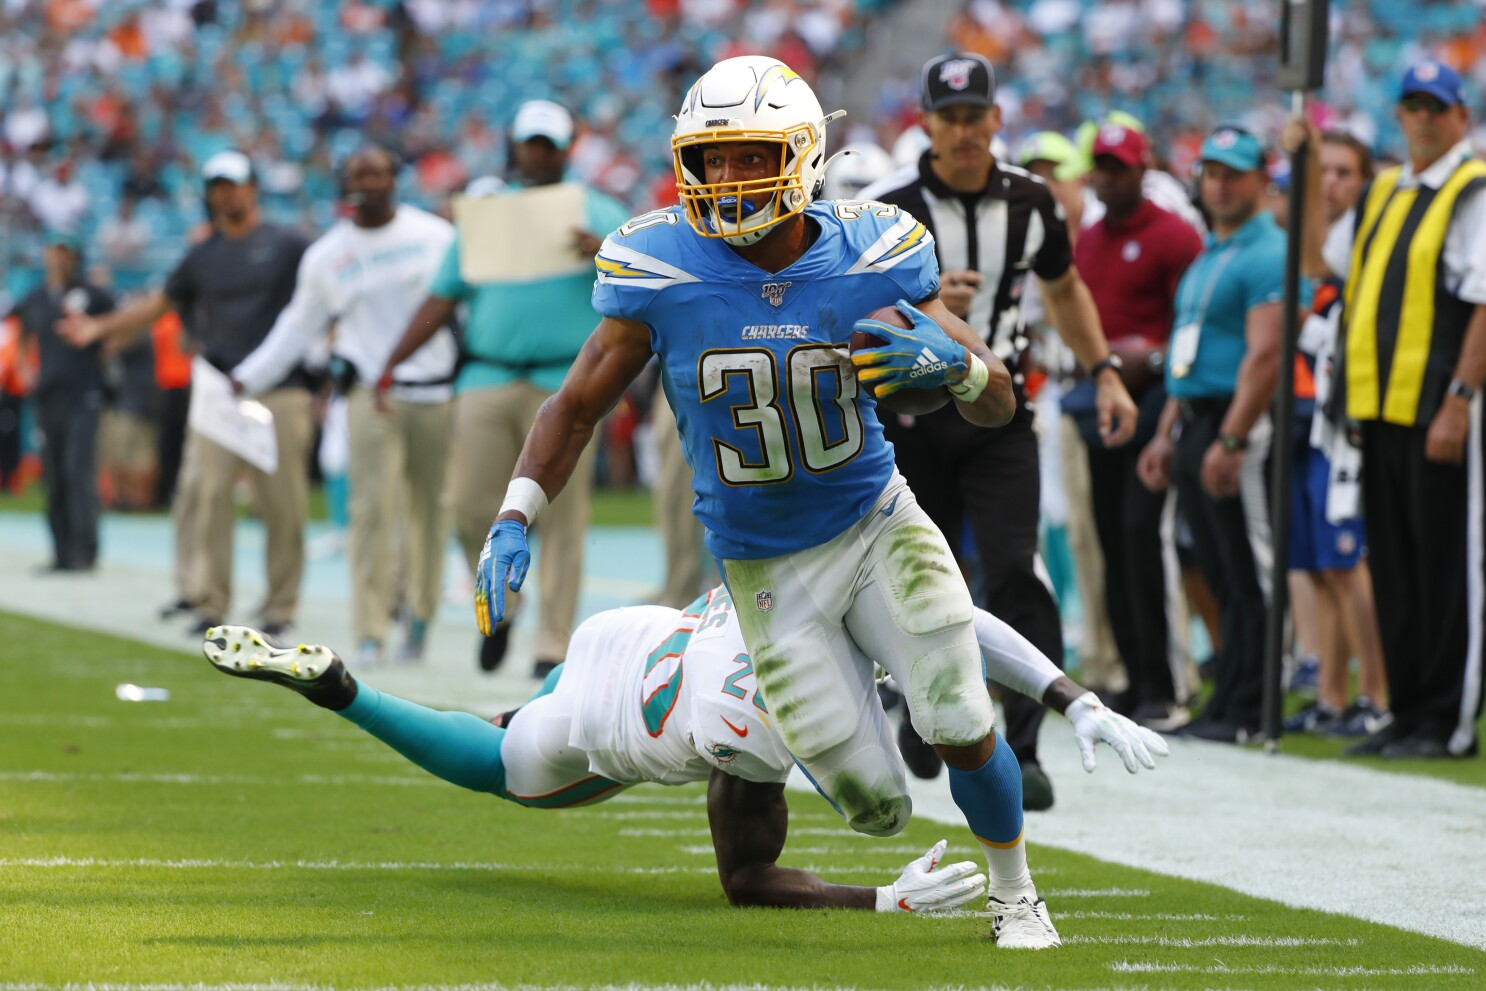 Chargers sign running back Austin Ekeler to four-year deal - Los Angeles Times